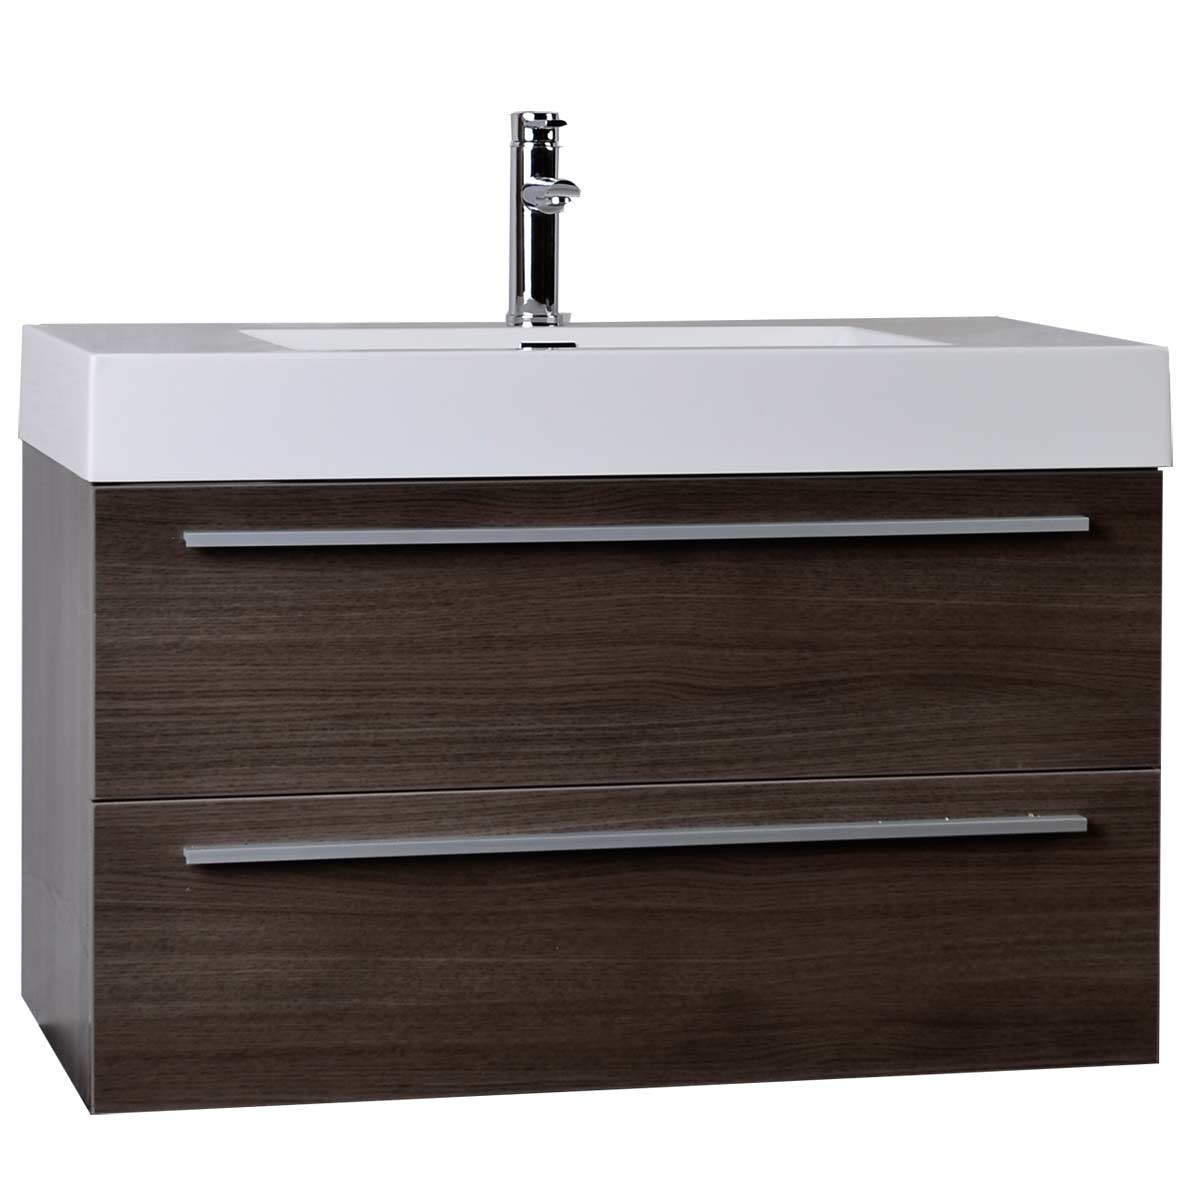 35 5 wall mount modern bathroom vanity in grey oak tn m900 go